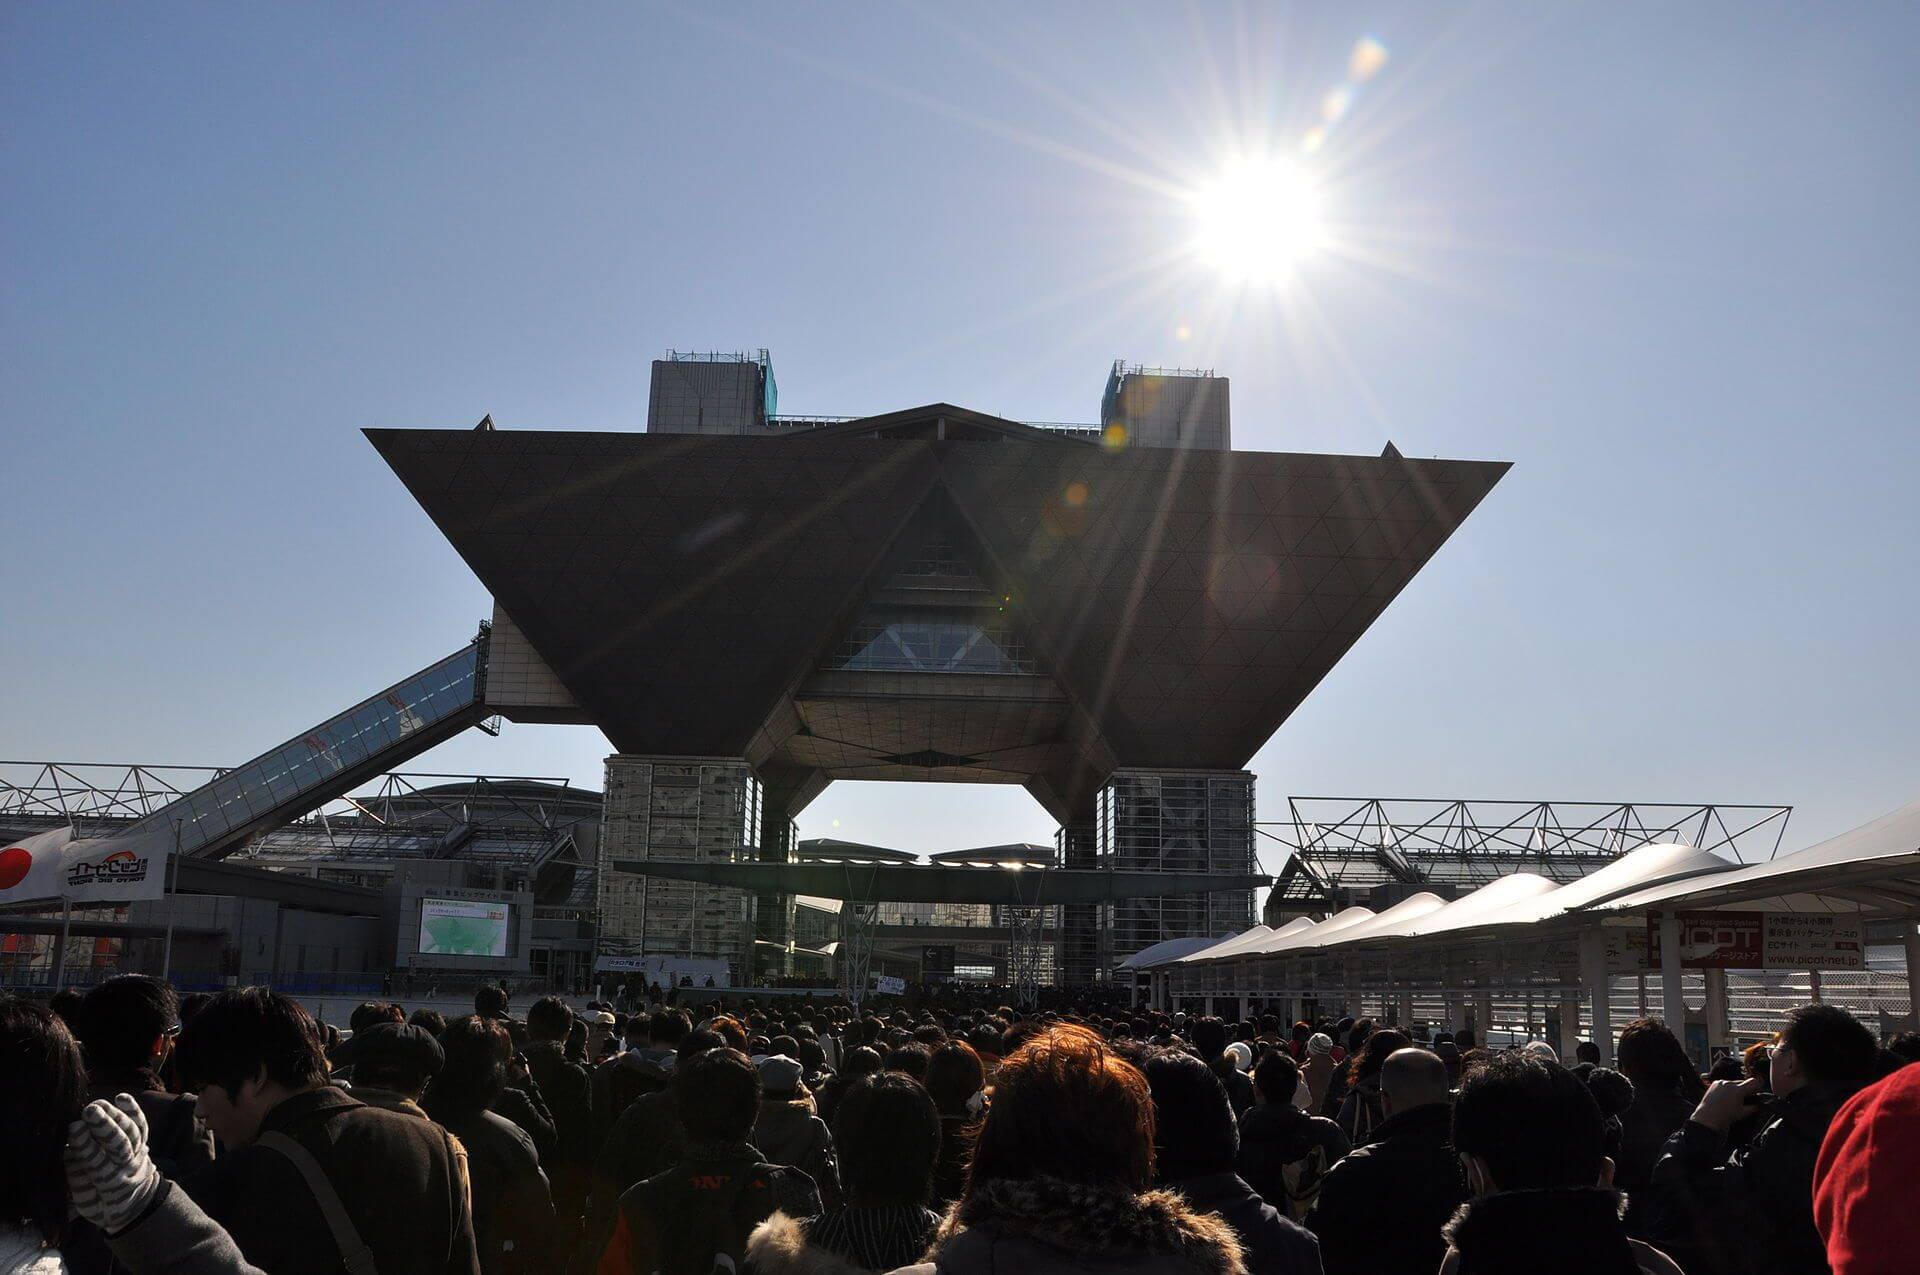 Comiket 89